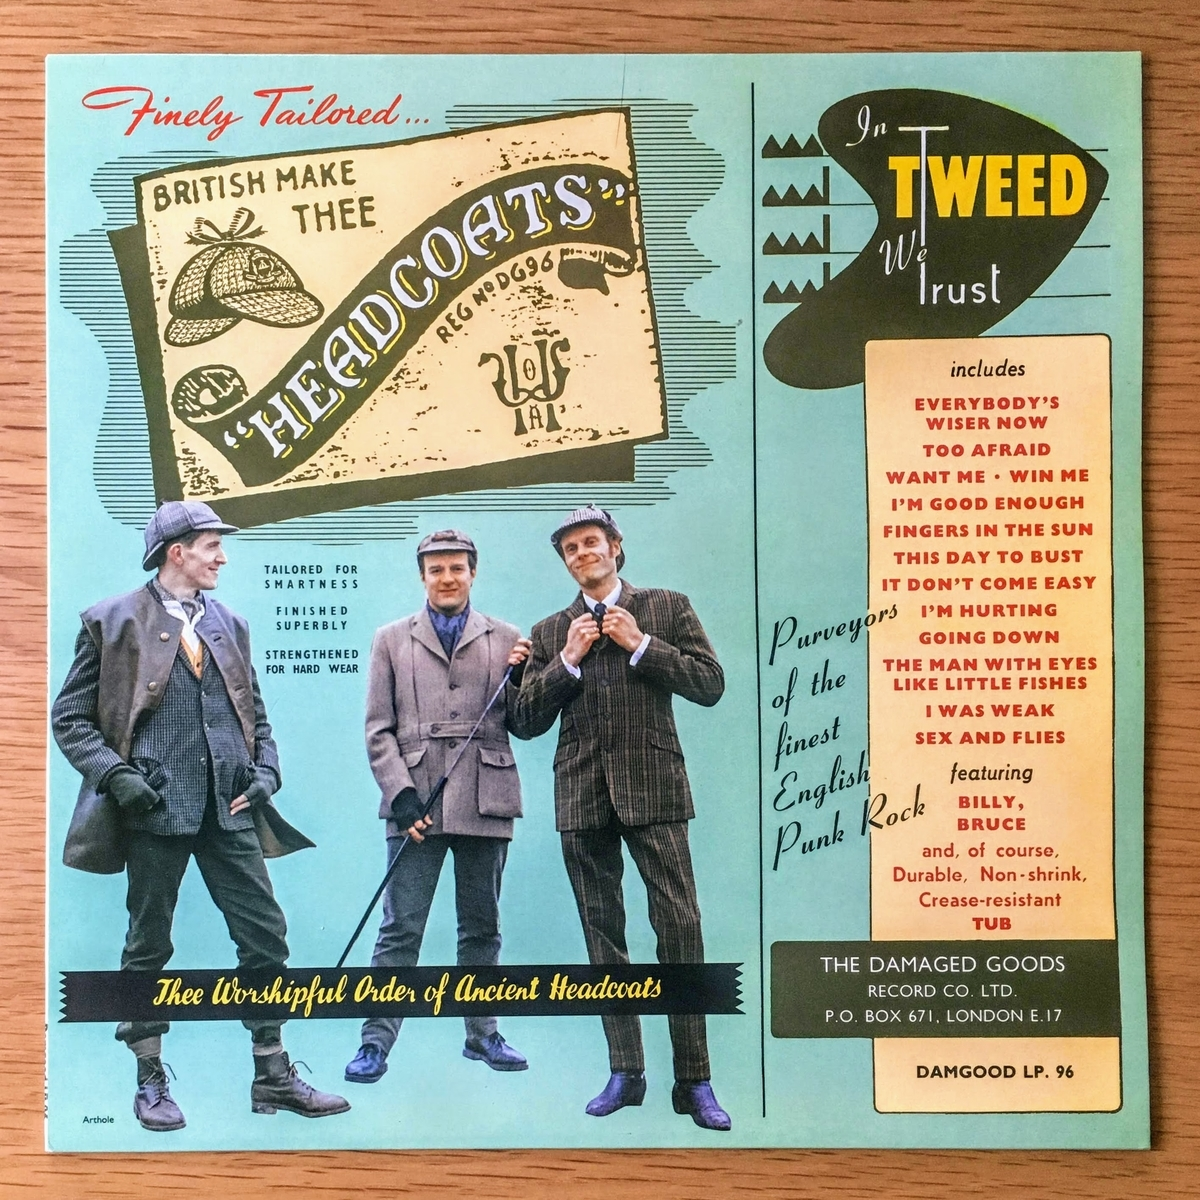 ヘッドコーツ(THEE HEADCOATS) IN TWEED WE TRUSTのレコード